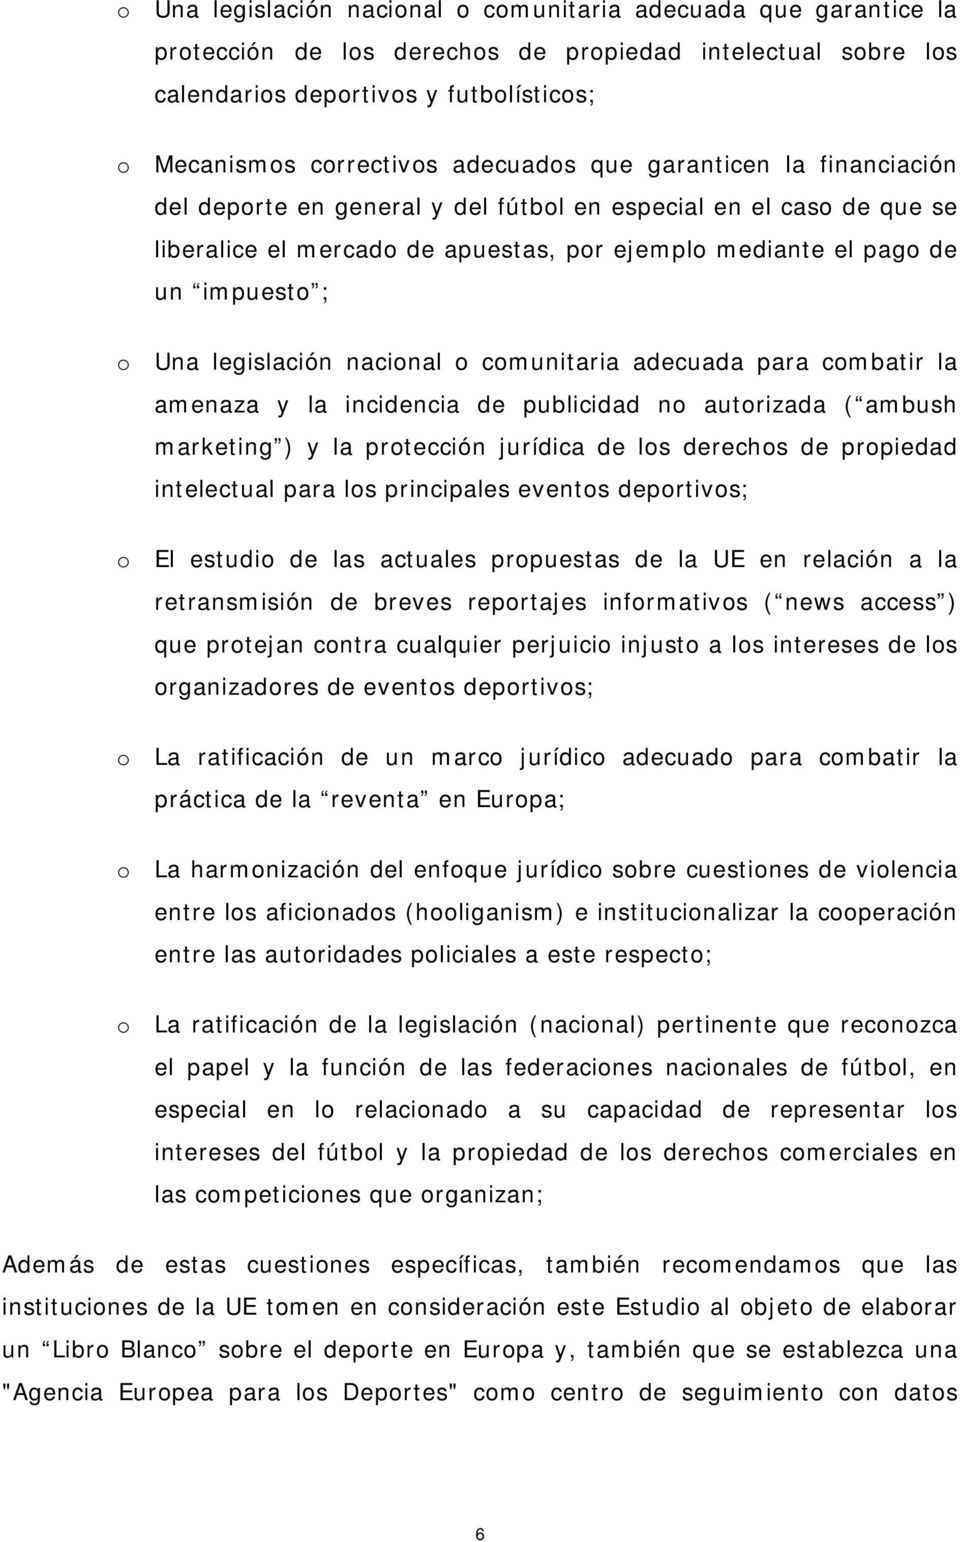 para cmbatir la amenaza y la incidencia de publicidad n autrizada ( ambush marketing ) y la prtección jurídica de ls derechs de prpiedad intelectual para ls principales events deprtivs; El estudi de